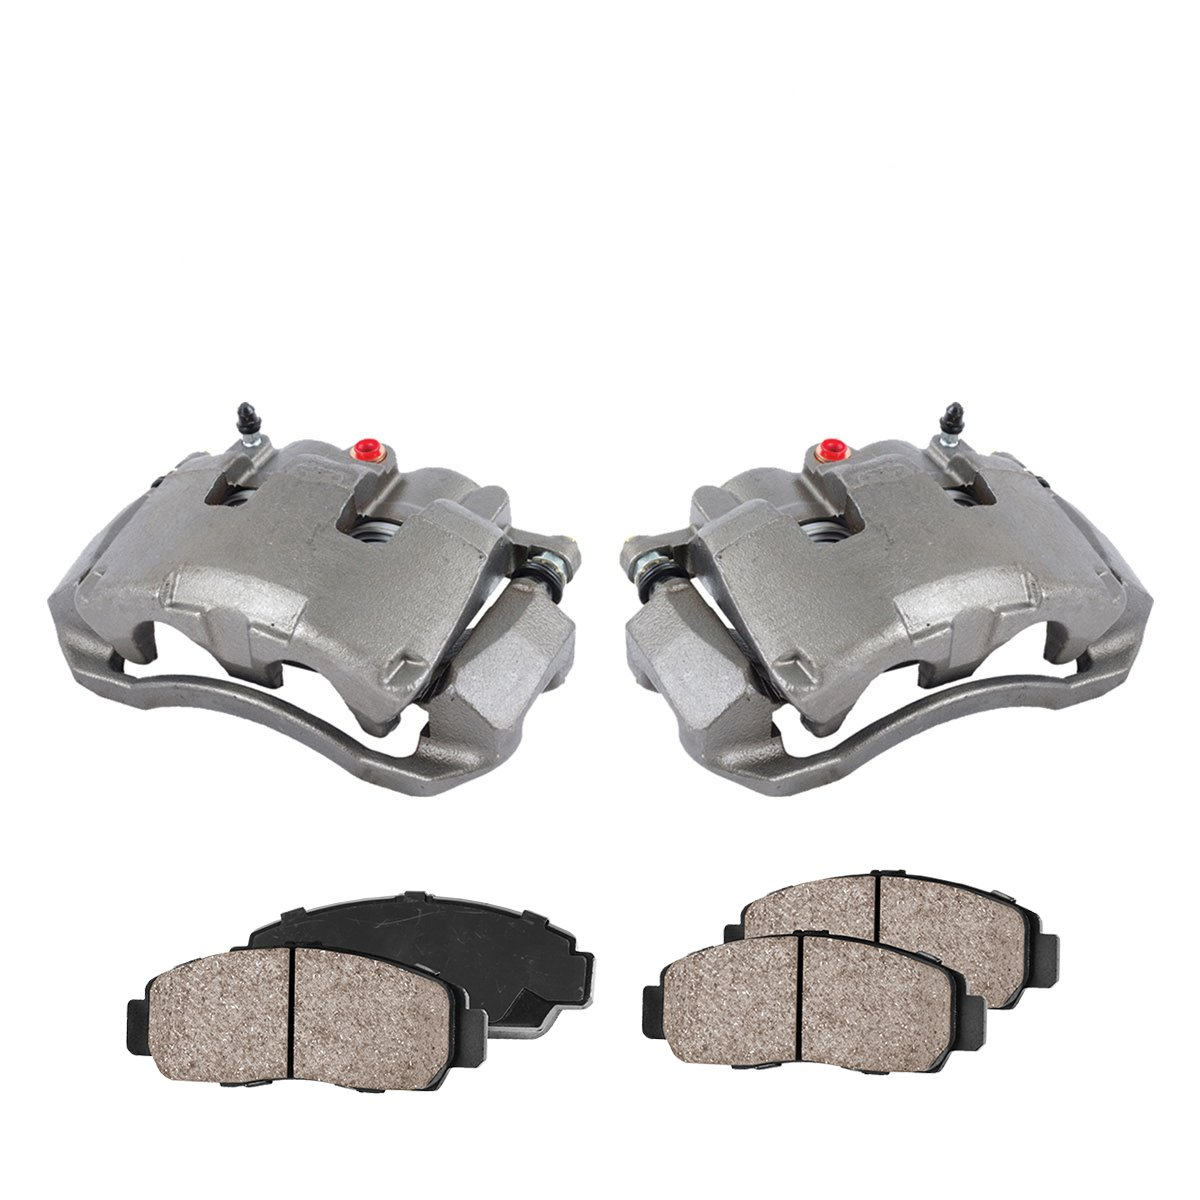 COEK00388 [2] FRONT Premium Loaded OE Caliper Assembly Set + Quiet Low Dust Ceramic Brake Pads Callahan Brake Parts